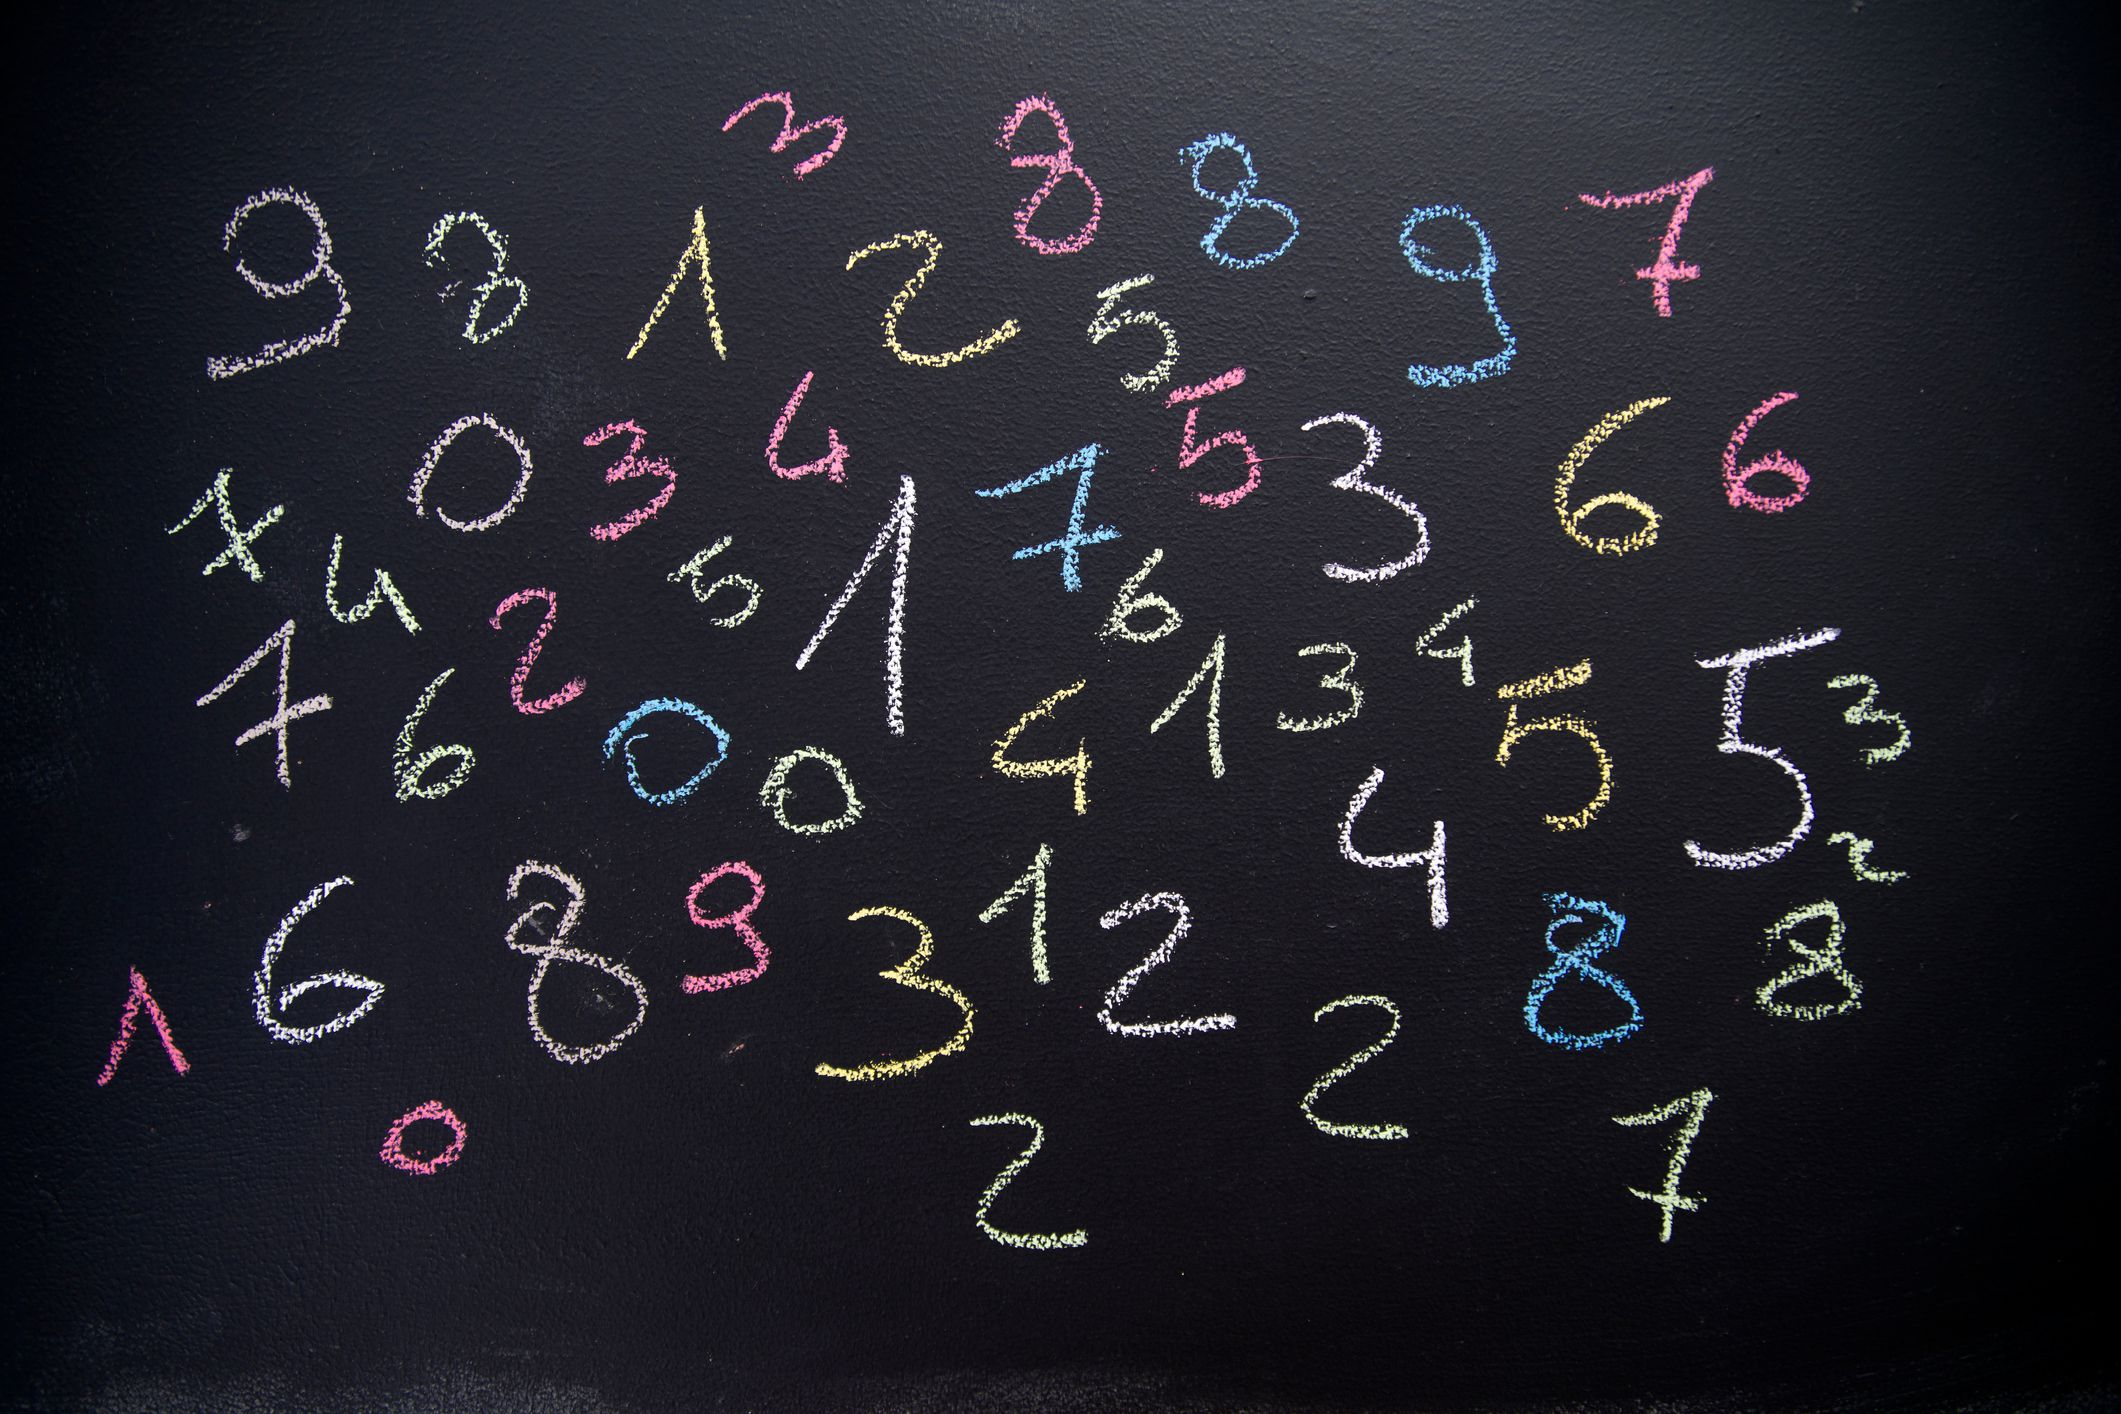 How to Calculate Your Numerology Birth Path